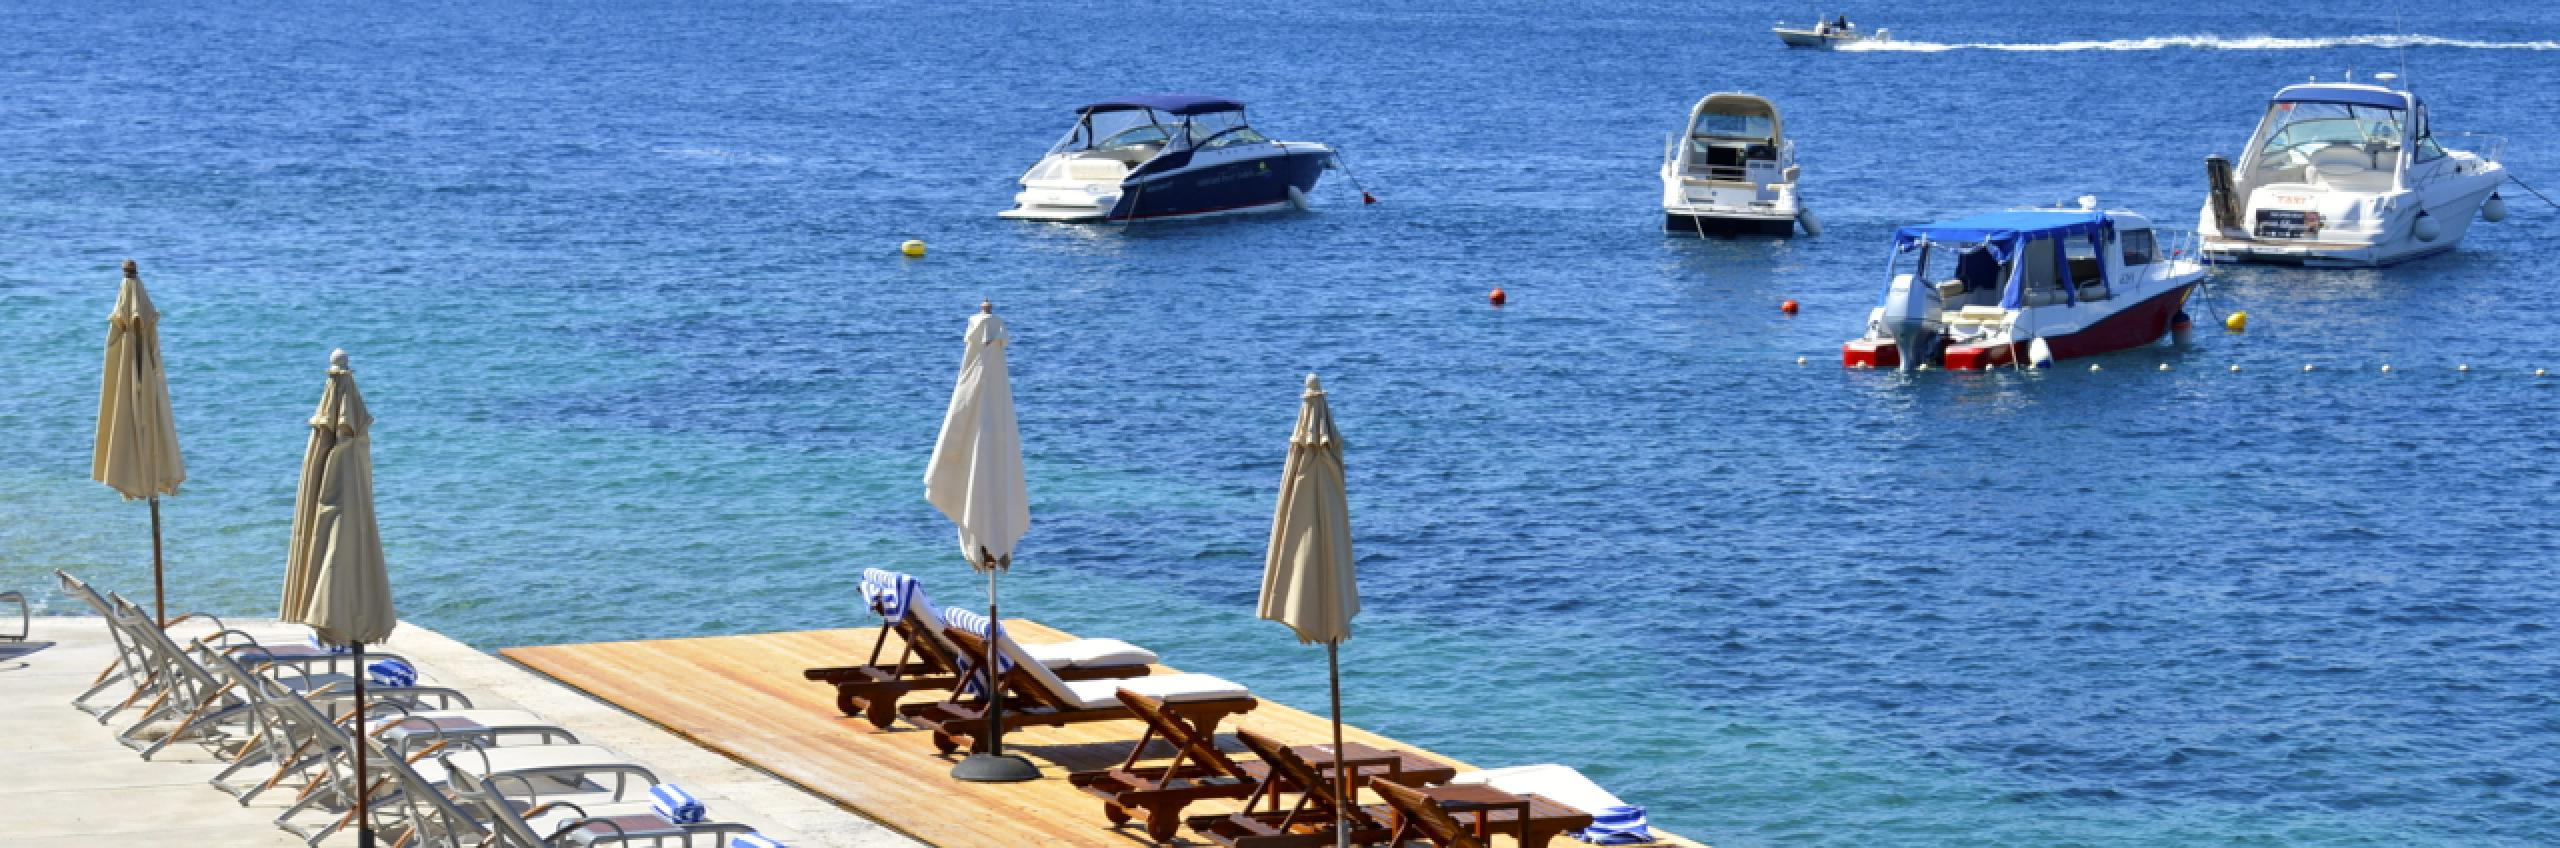 Best beaches in Hvar